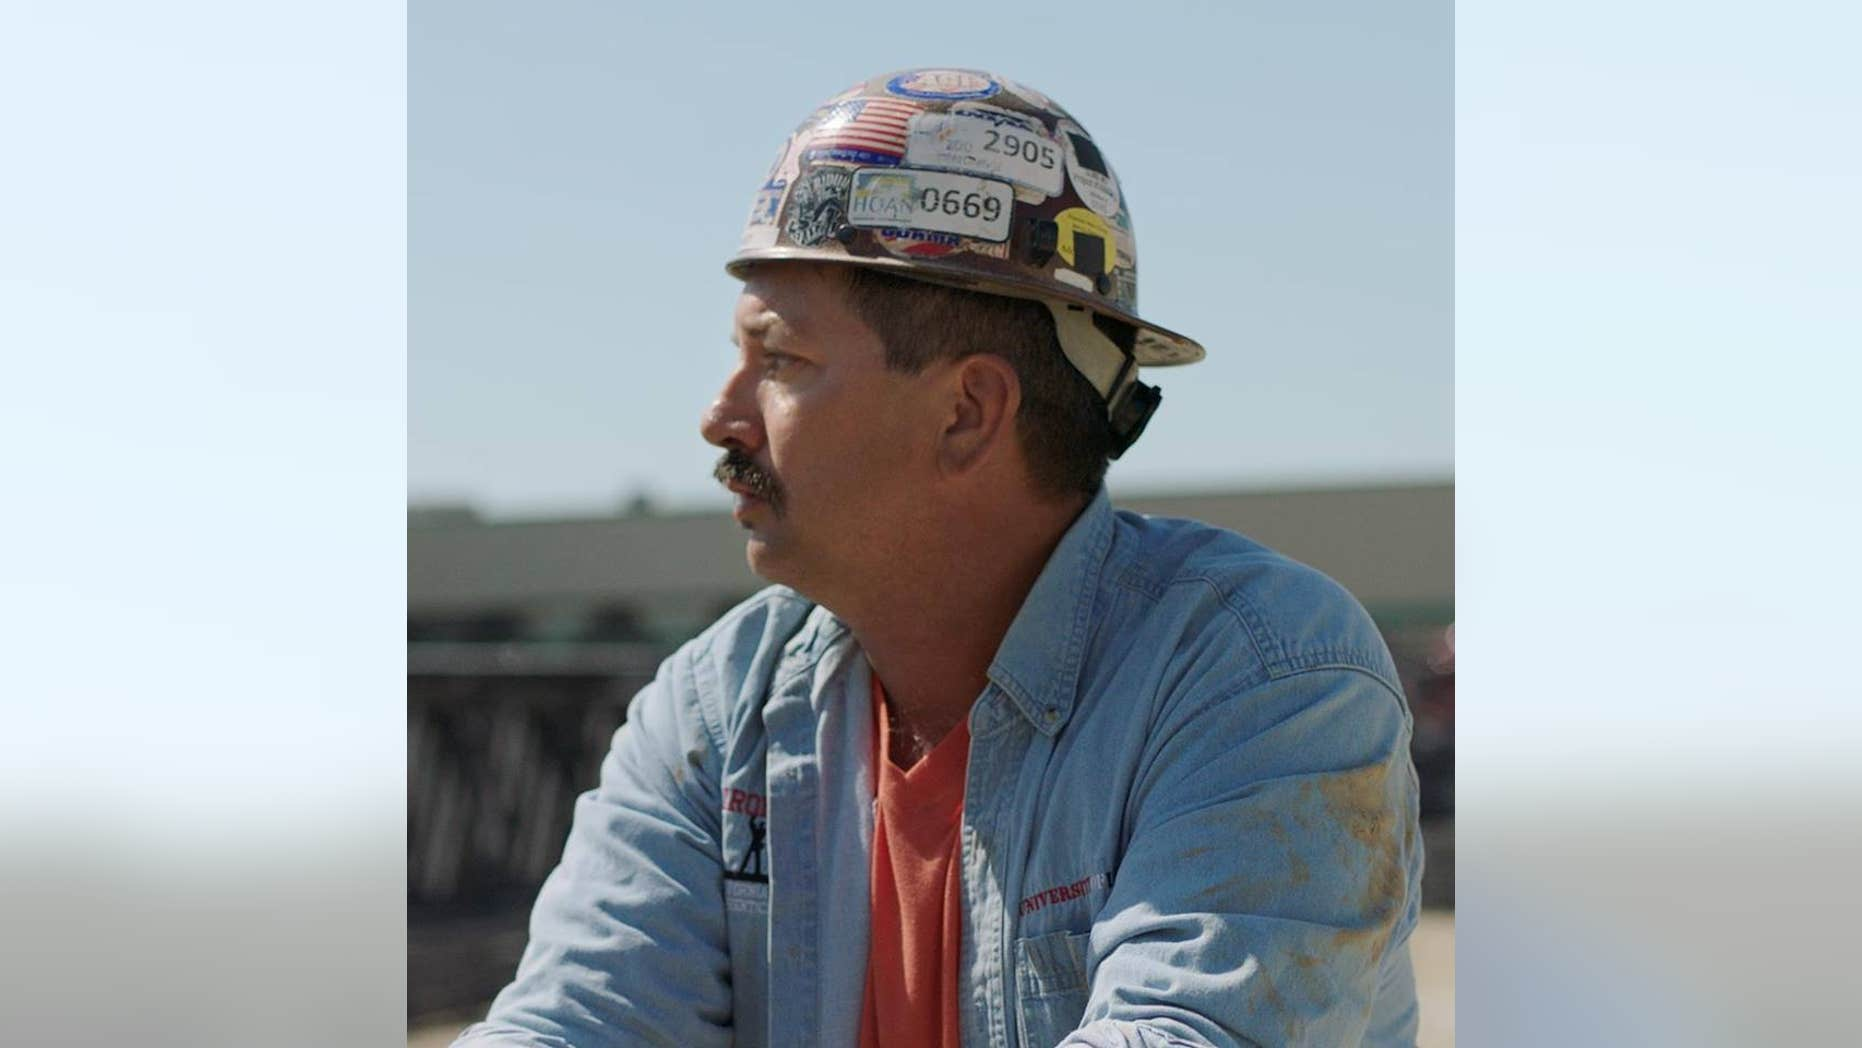 Randy Bryce, a union worker and Democrat, is vying for the U.S. House seat that will be vacated by House Speaker Paul Ryan, R-Wis.